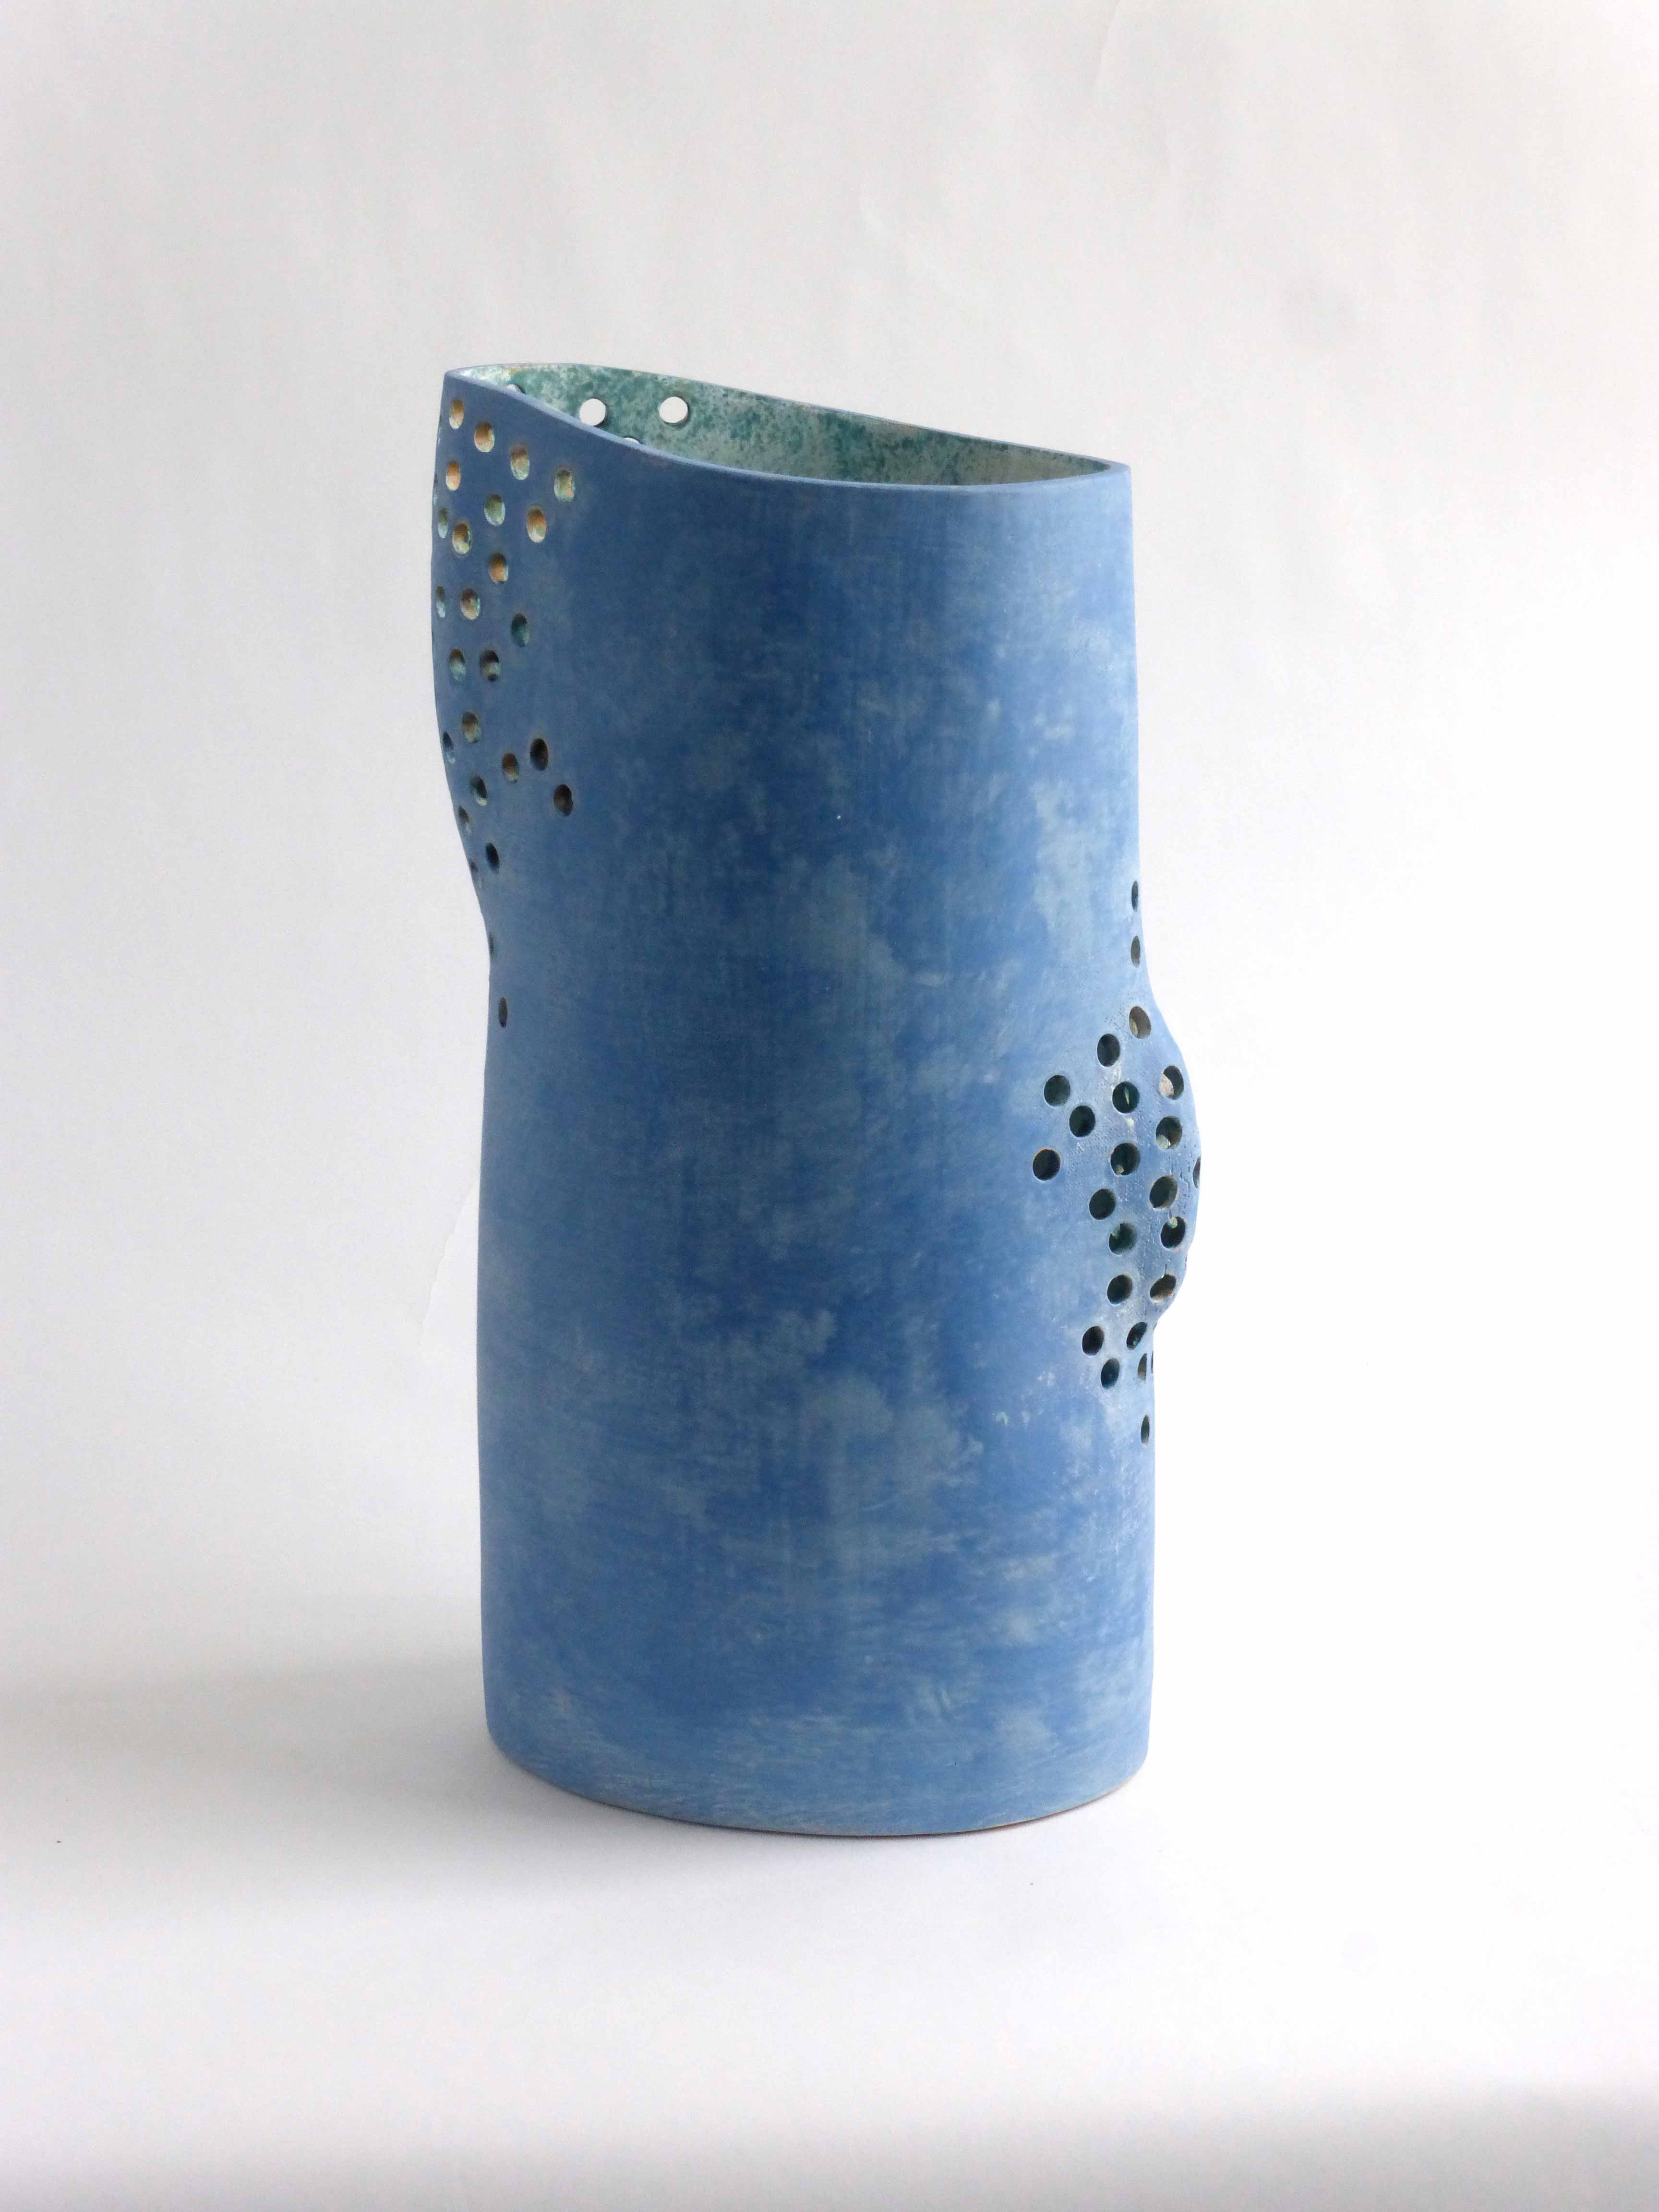 Mike Byrne, Perforated Vessel, fired clay, 2014, 42 x 20 x 17cm, EUR500 SOLD